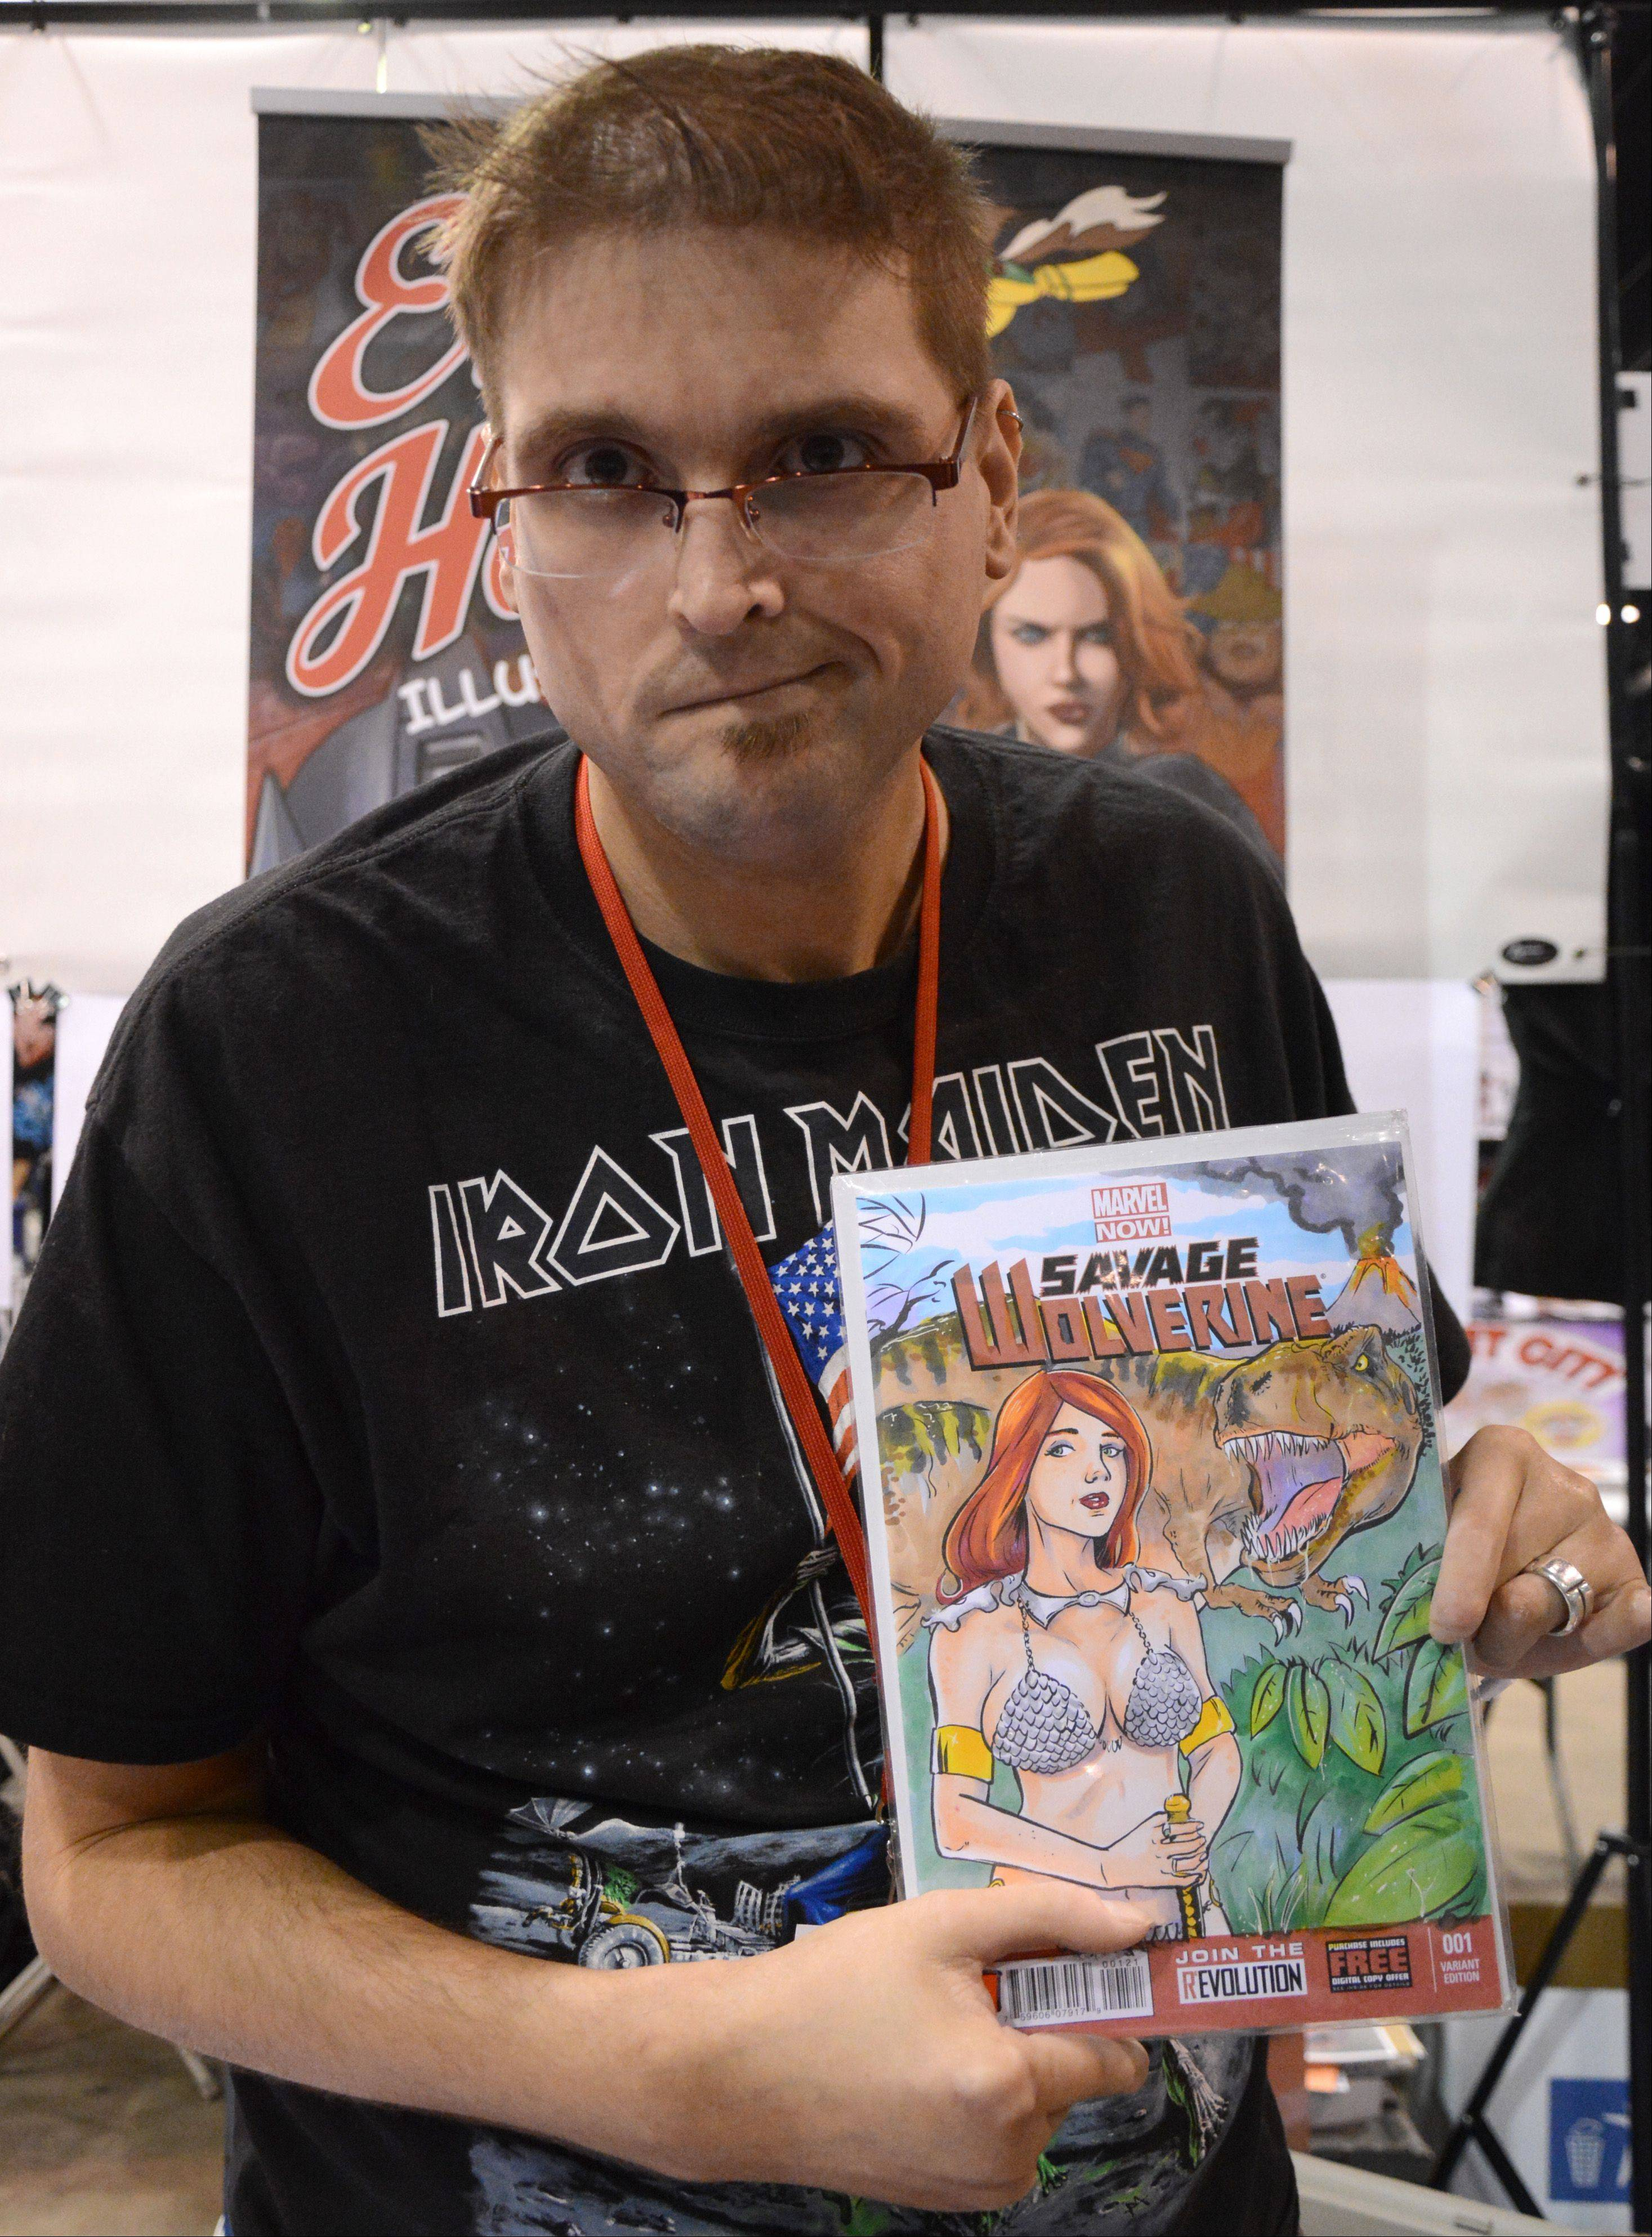 Erik Hodson, of Detroit poses with some of his artwork at Comic Con.